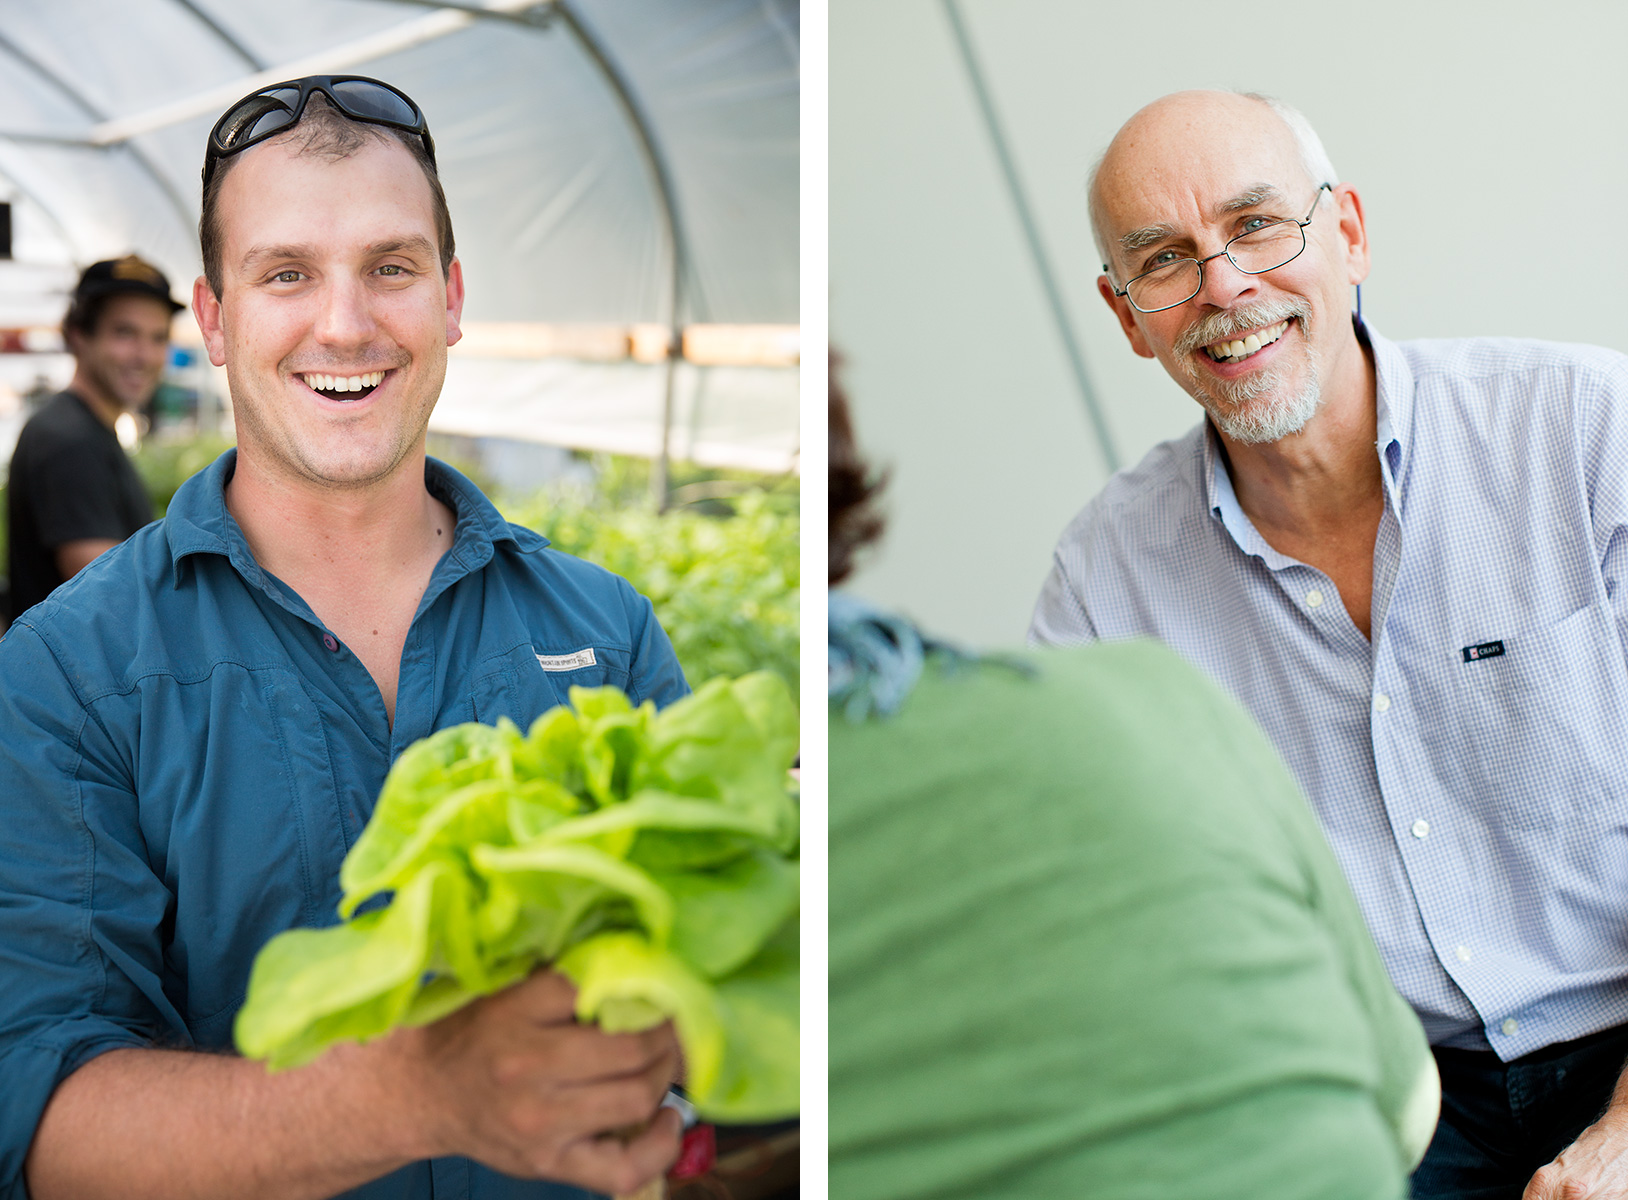 Business portraits of a fish farmer and an adult student for editorial